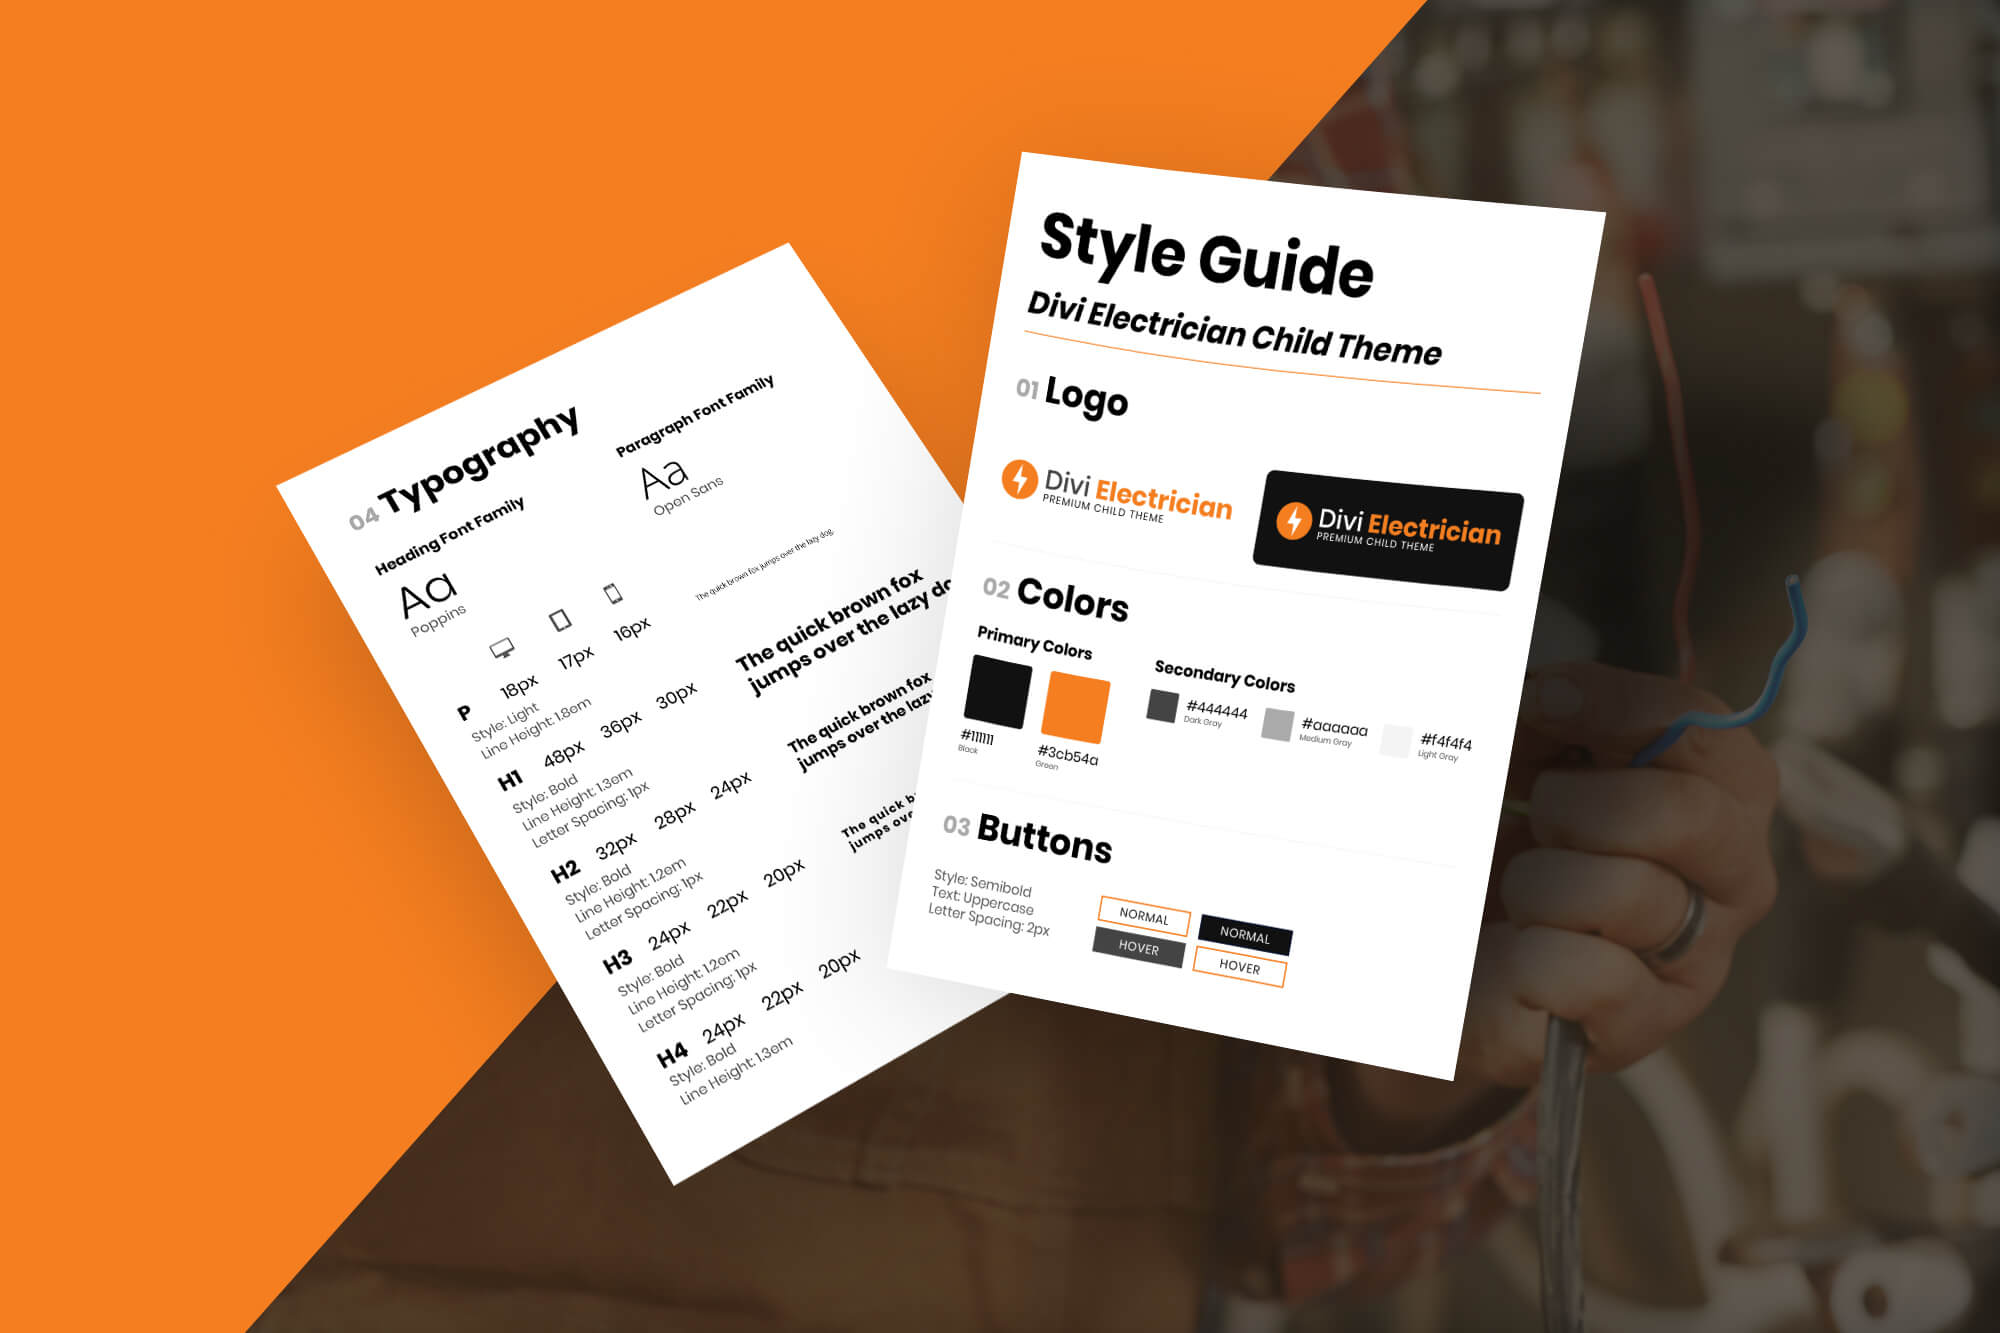 Divi Paving Child Theme Style Guide Mockup